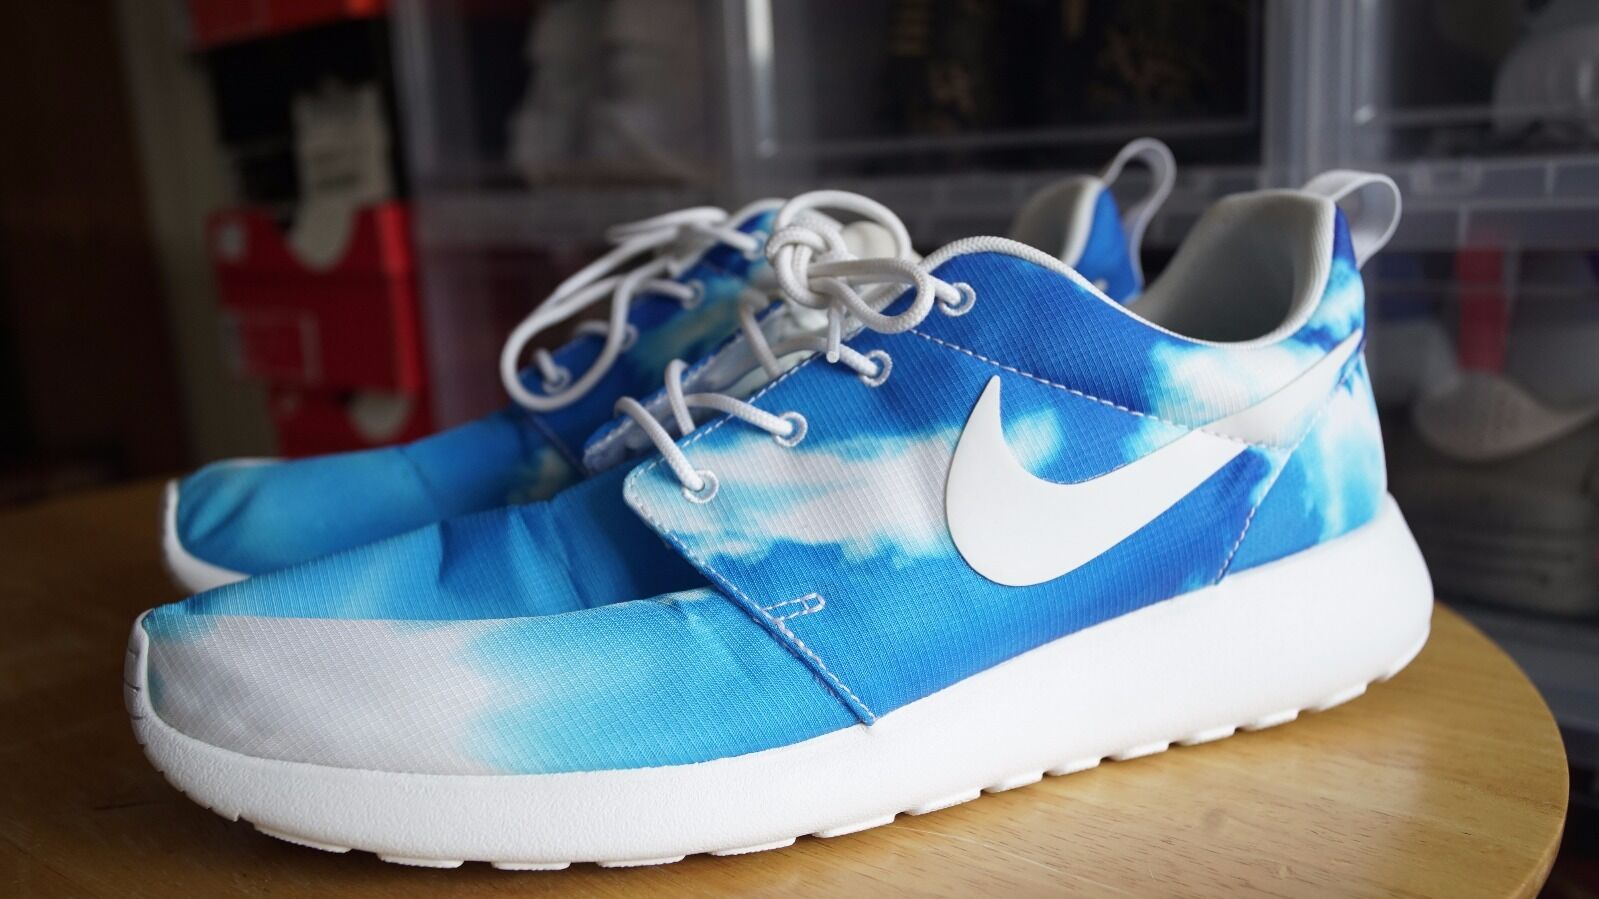 buy online 1fdbf 5a908 ... new arrivals high quality nike roshe run santa monica pack sky size 11  ed632 be7c2